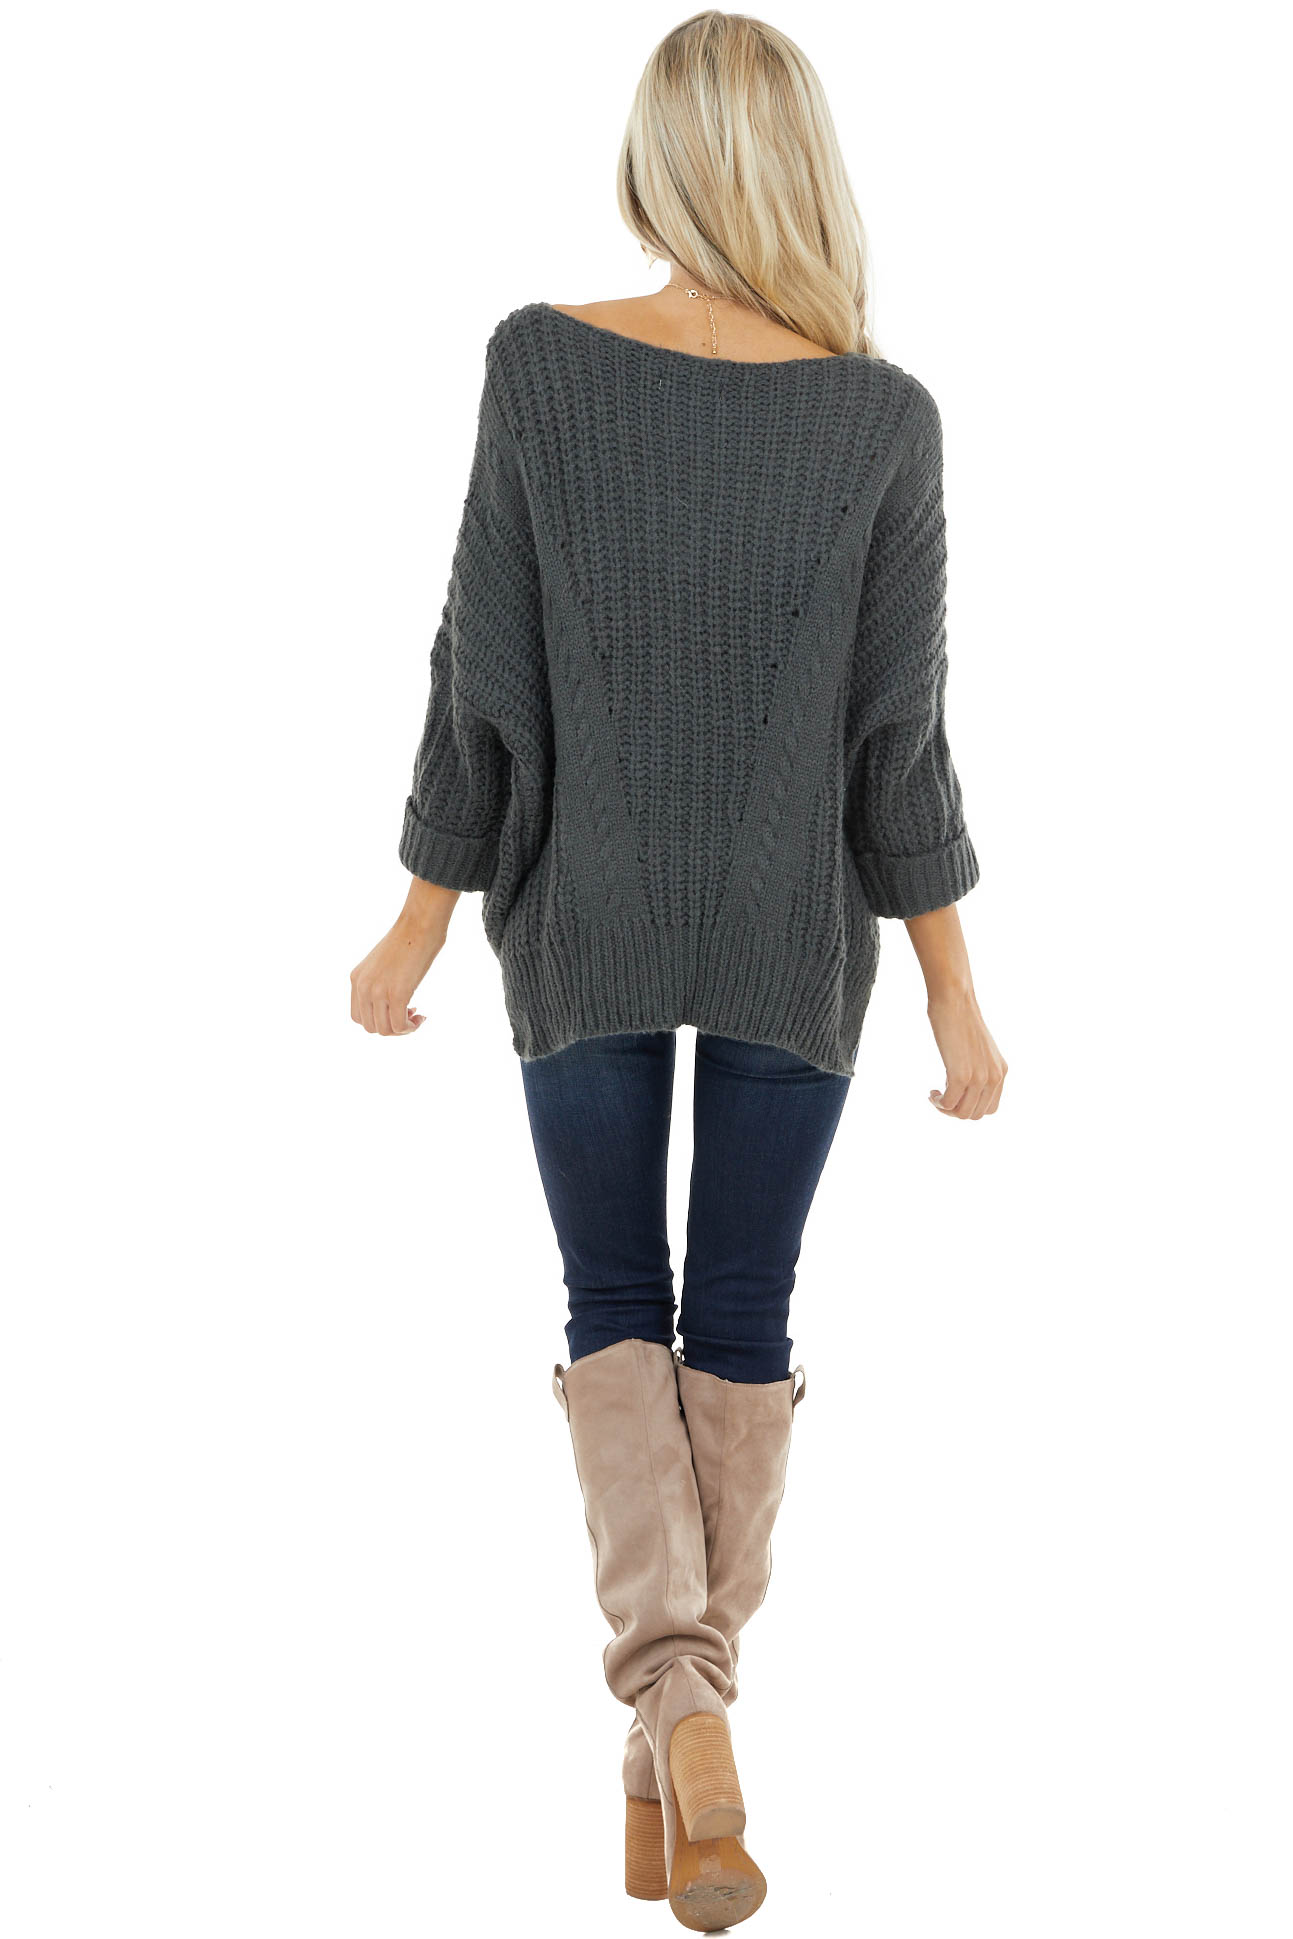 Hunter Green Oversized Cable Knit Sweater with Side Slits